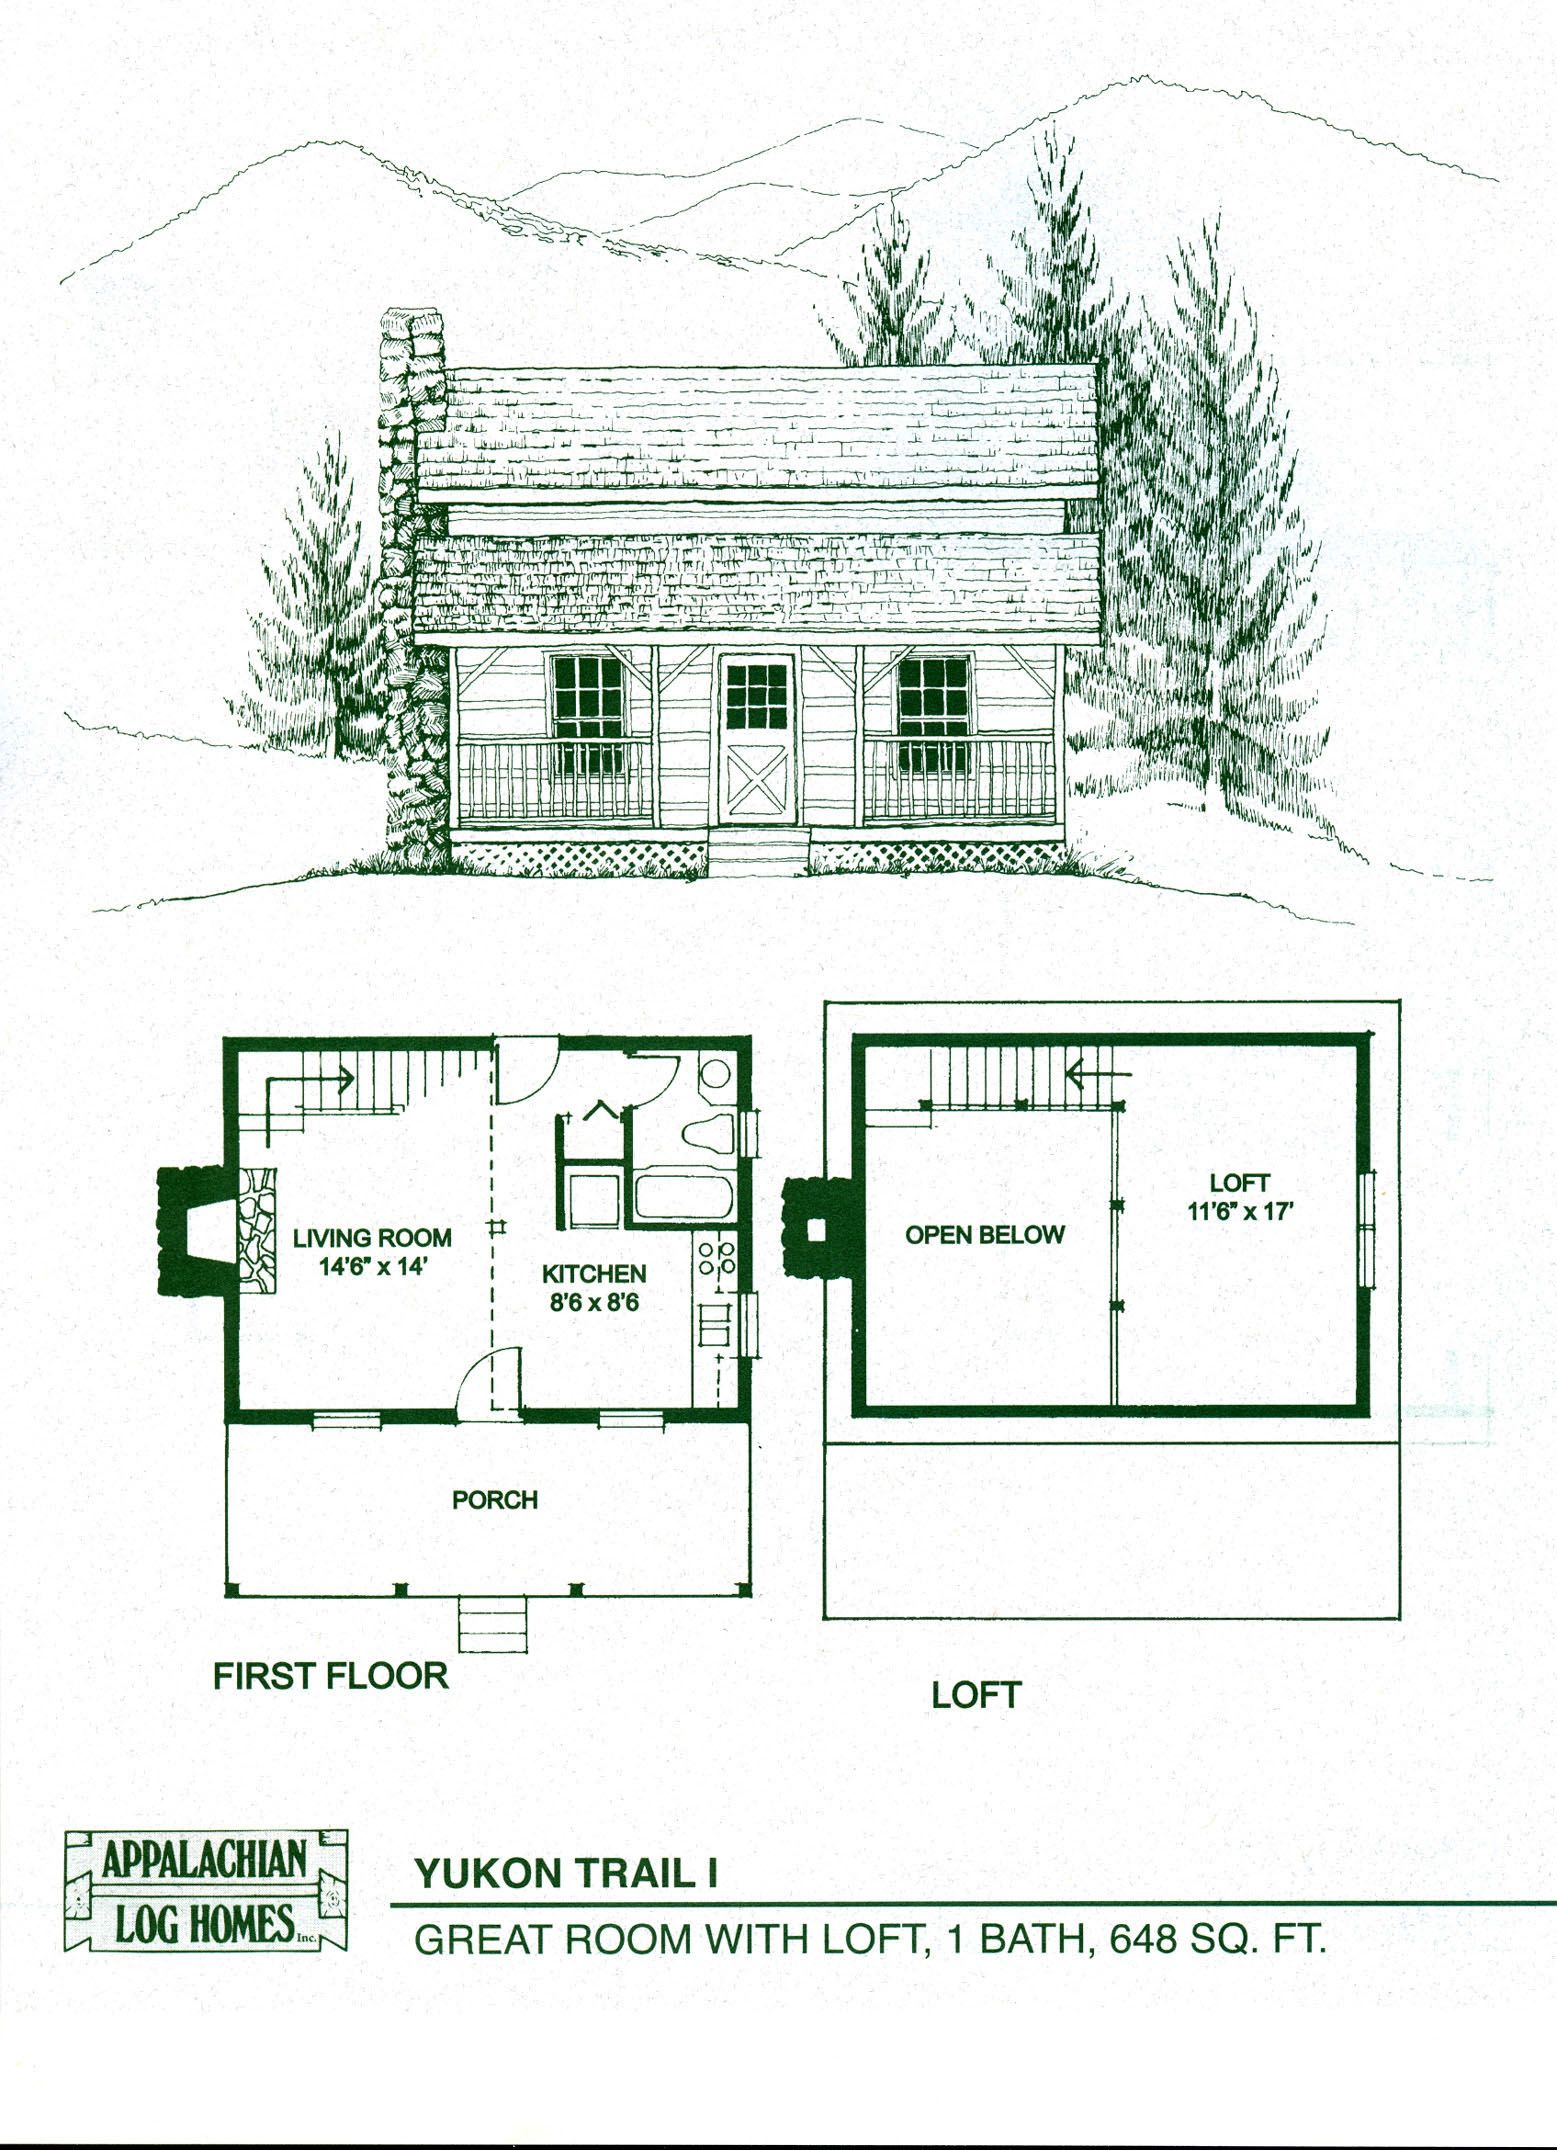 Log home floor plans log cabin kits appalachian log for Cabin house plans